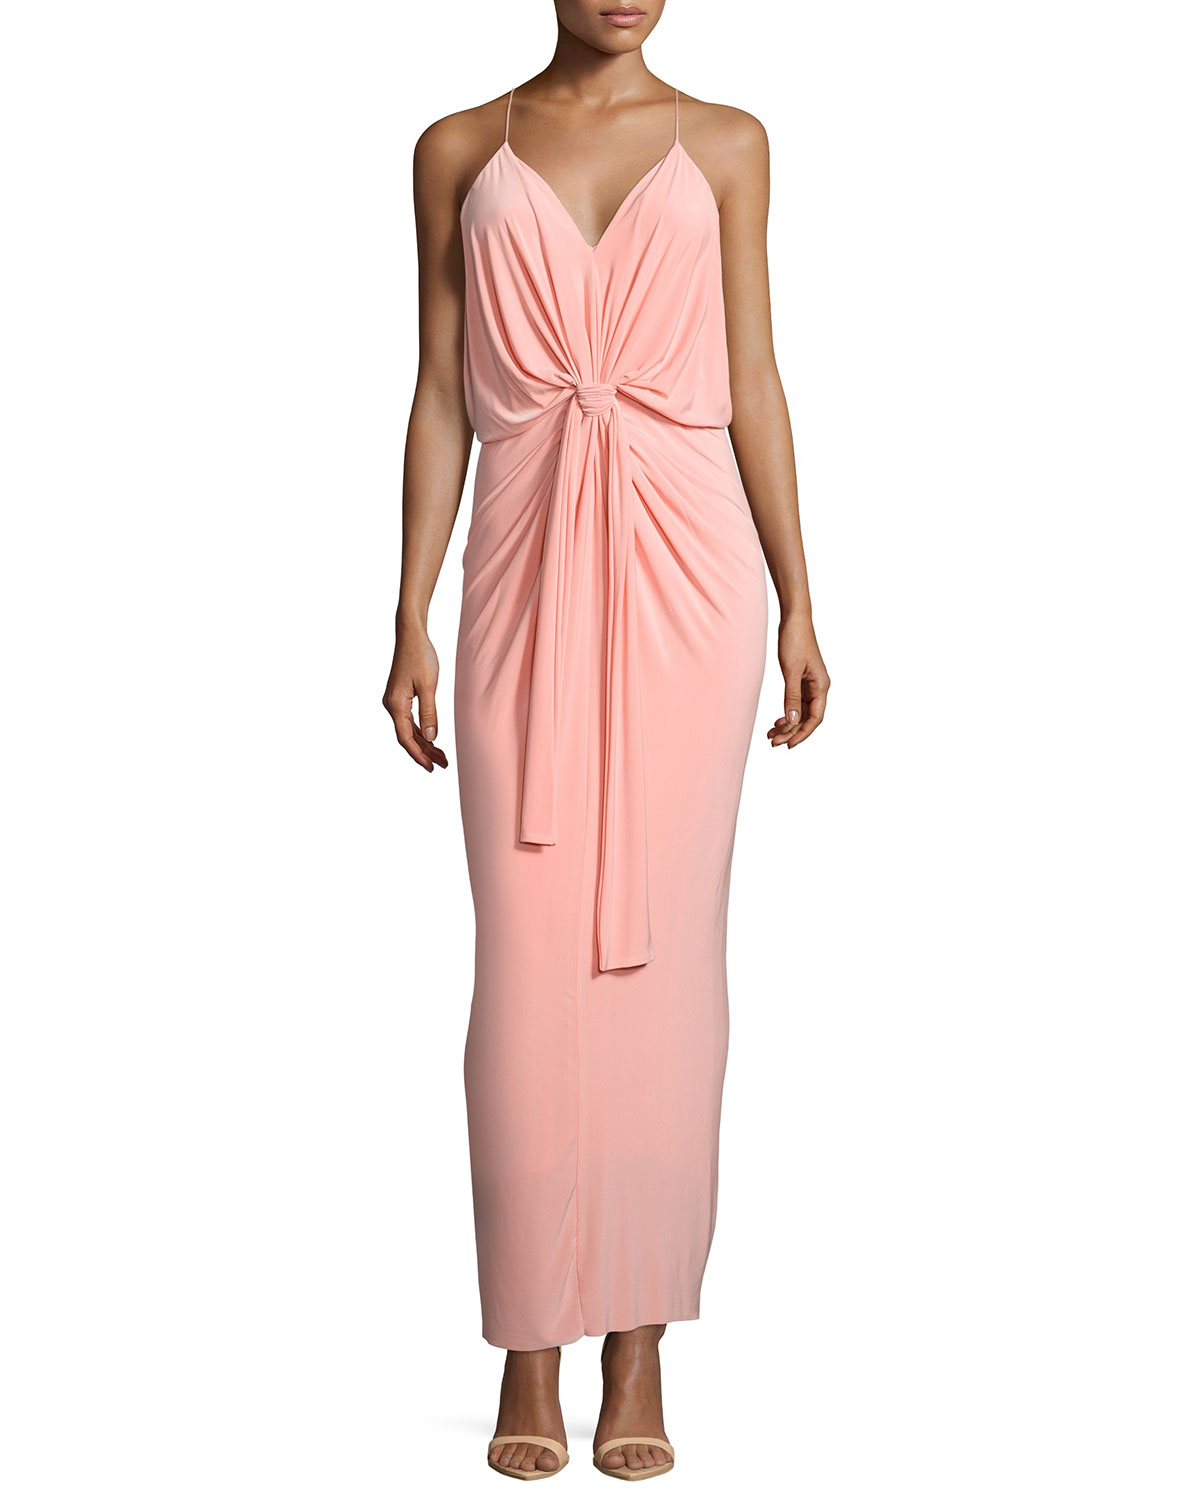 Sleeveless Tie-Front Maxi Dress, Blush, Size: X-SMALL, Pink - T Bags